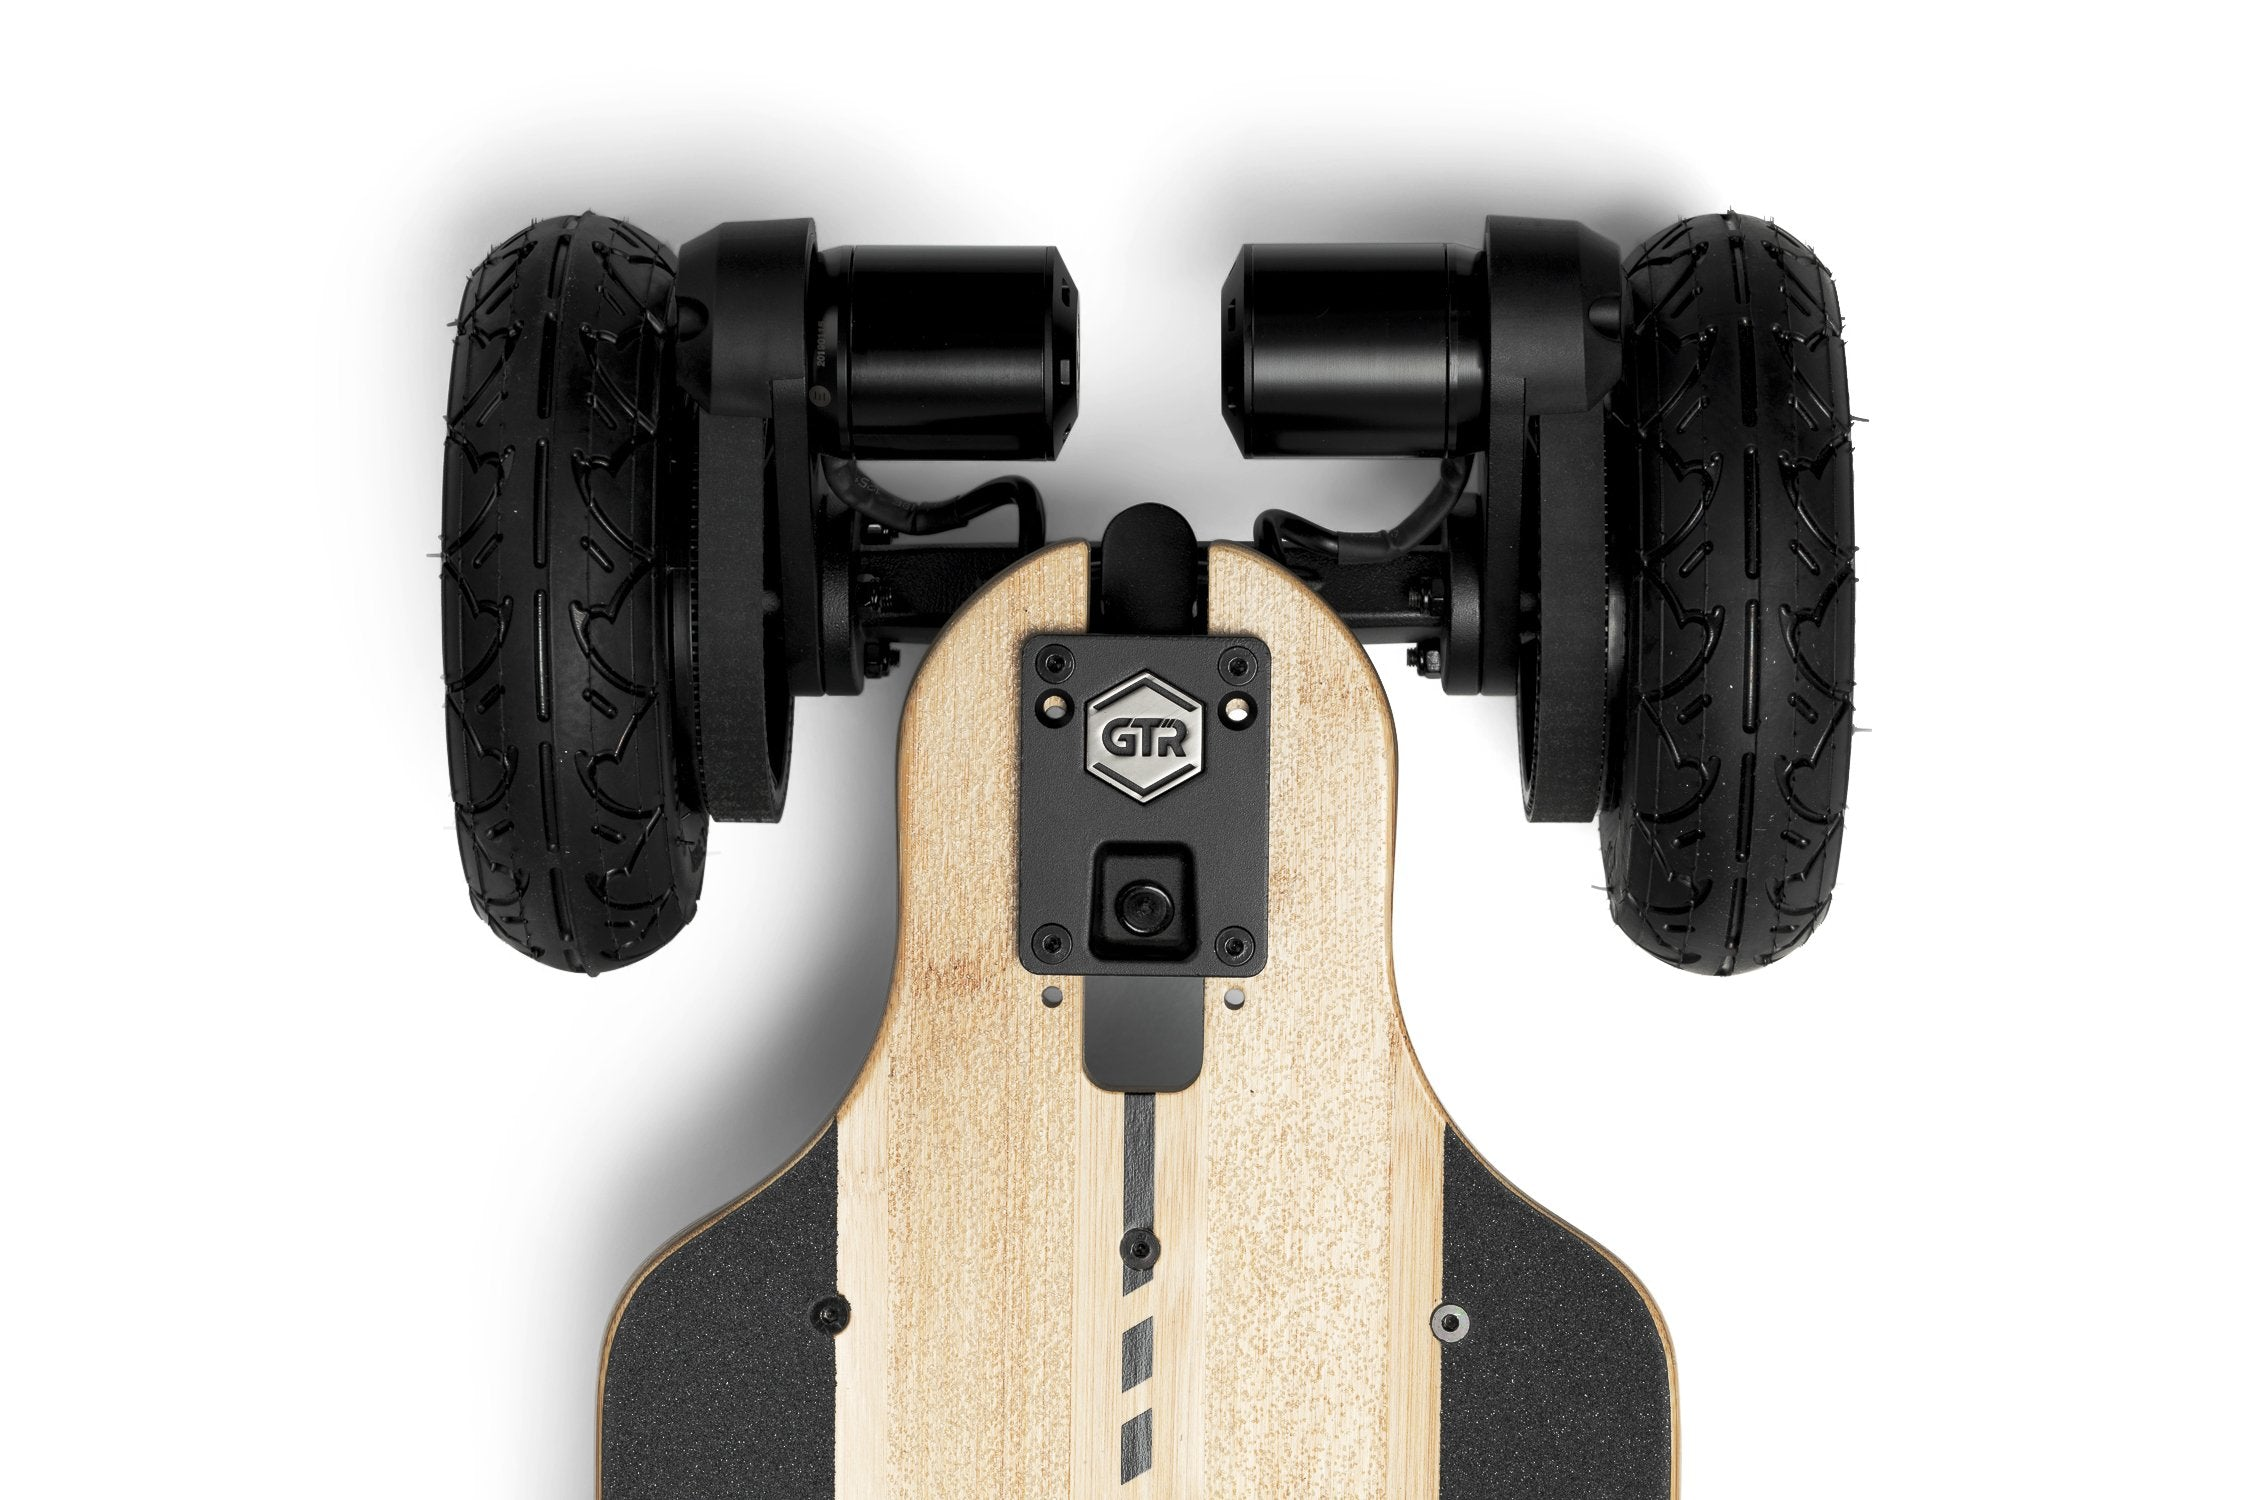 GTR Bamboo All Terrain